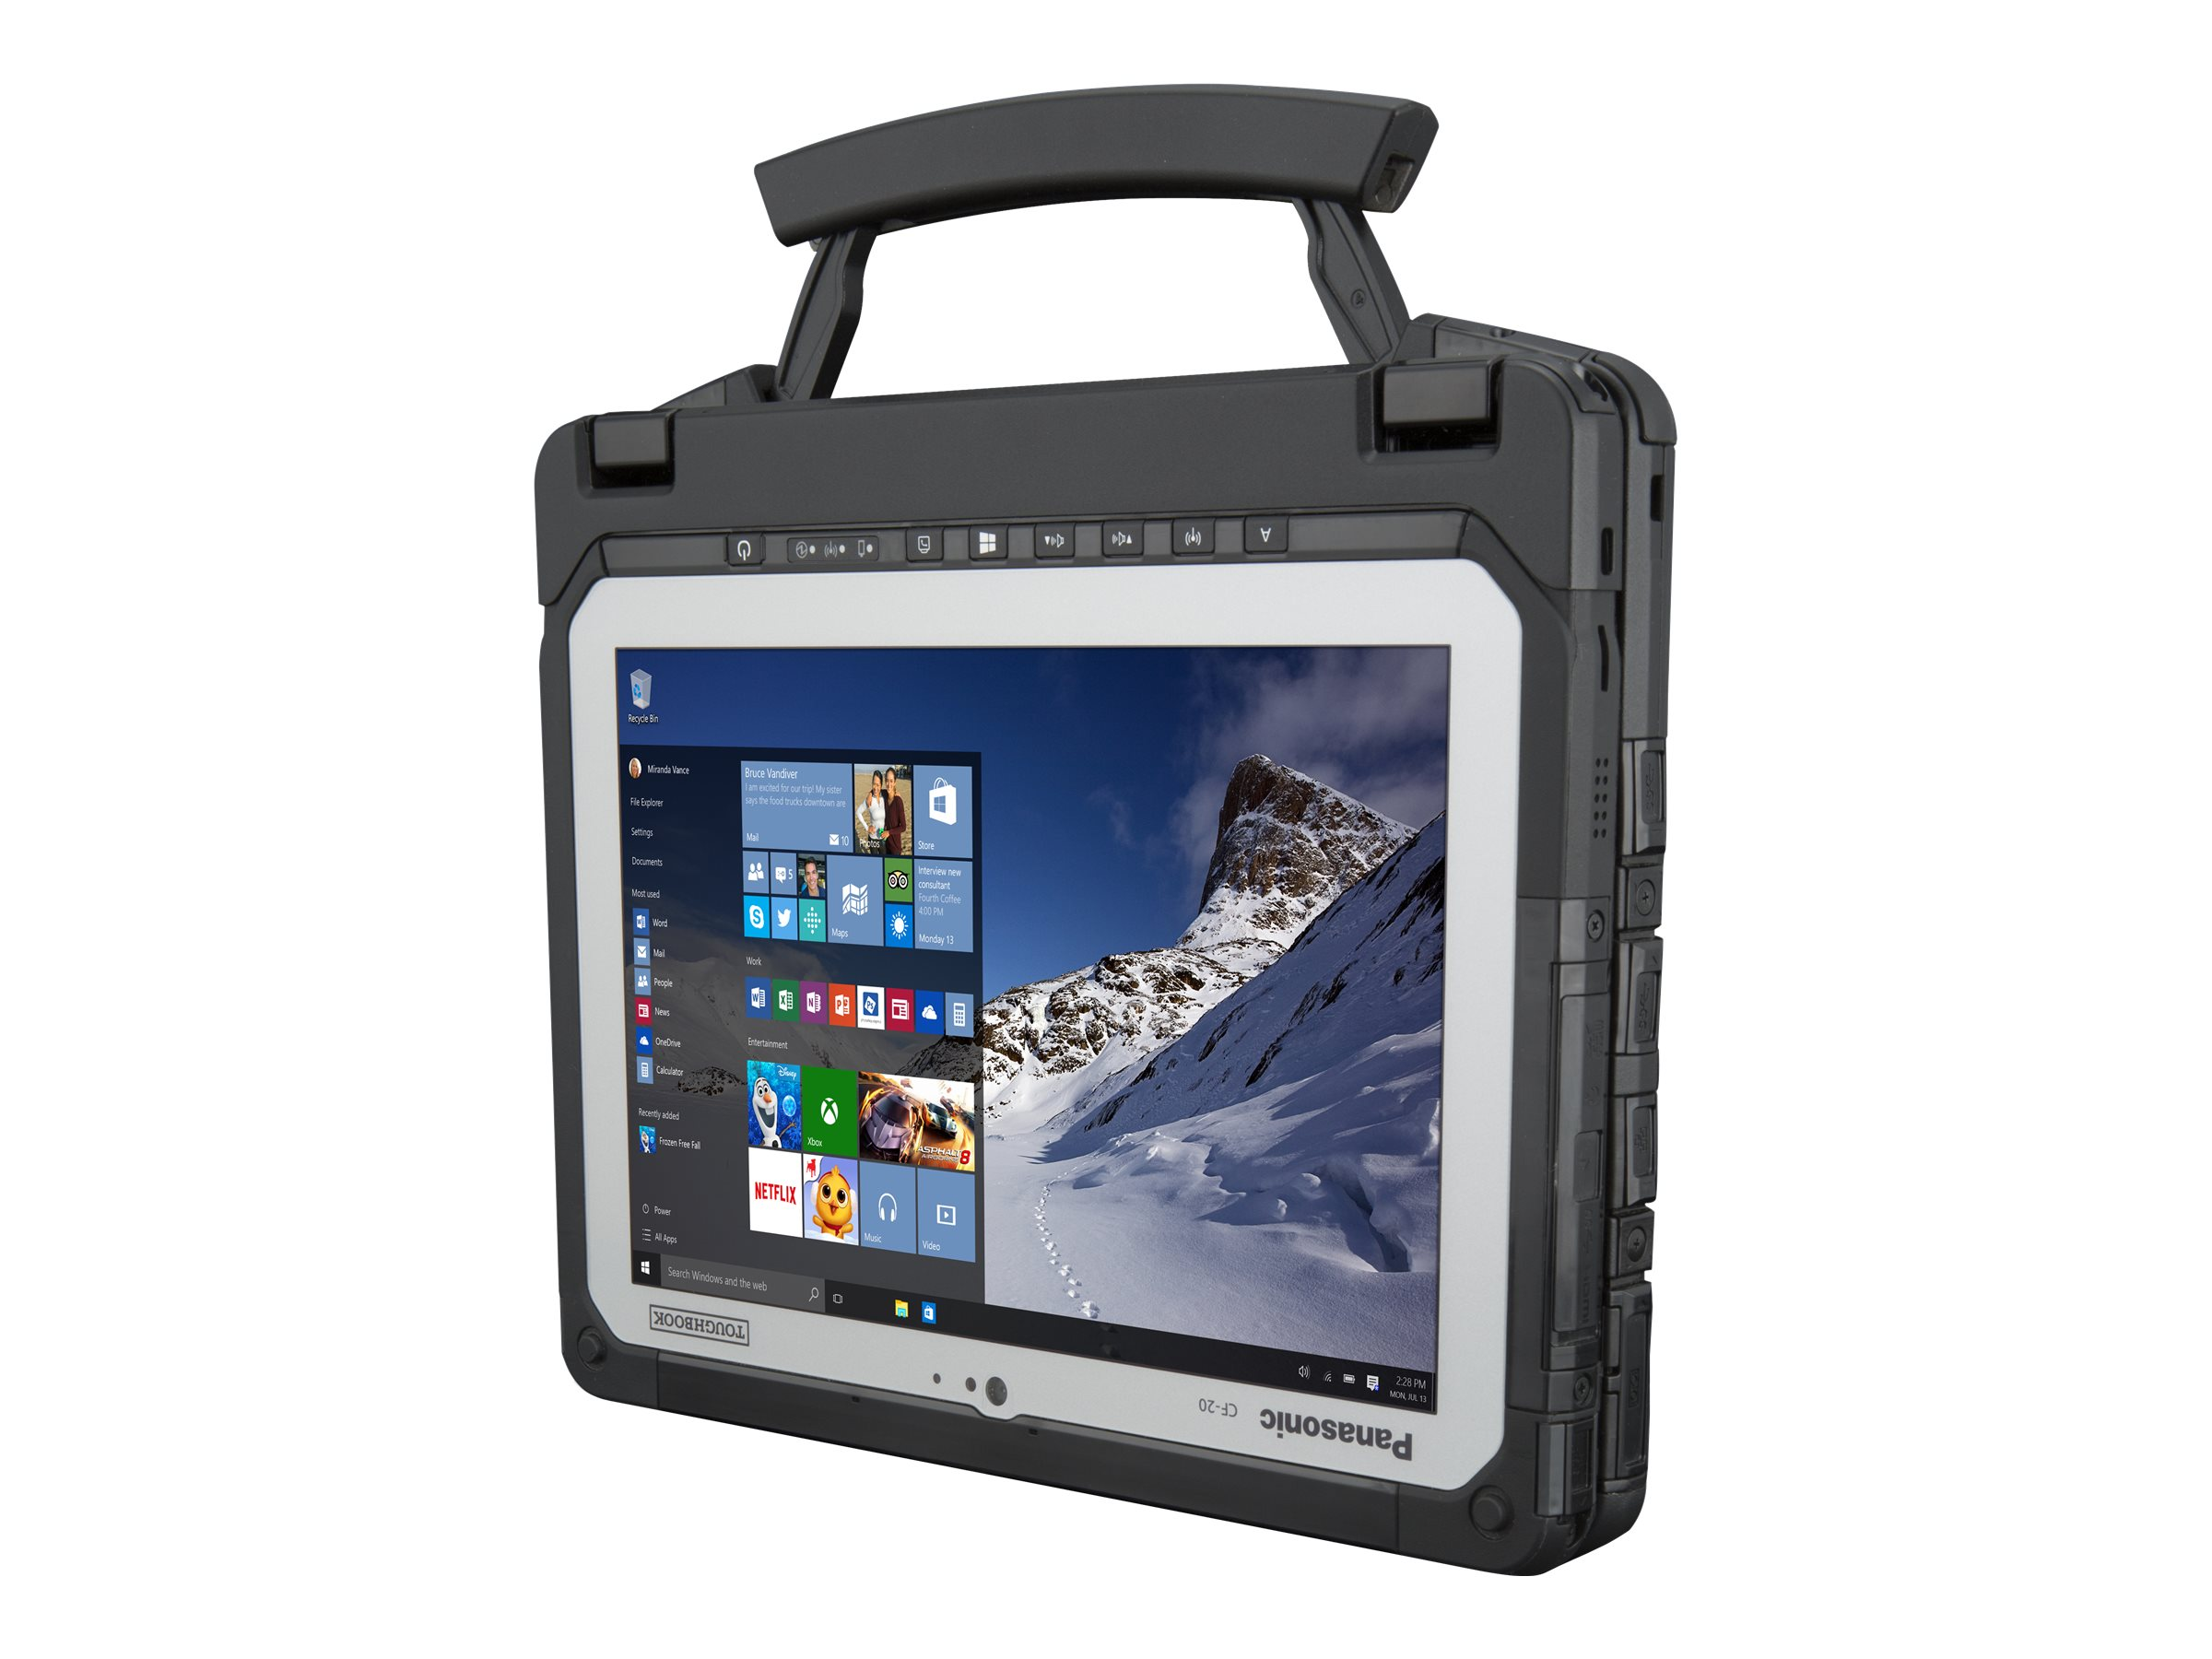 Panasonic Toughbook 20 10.1 WUXGA MT